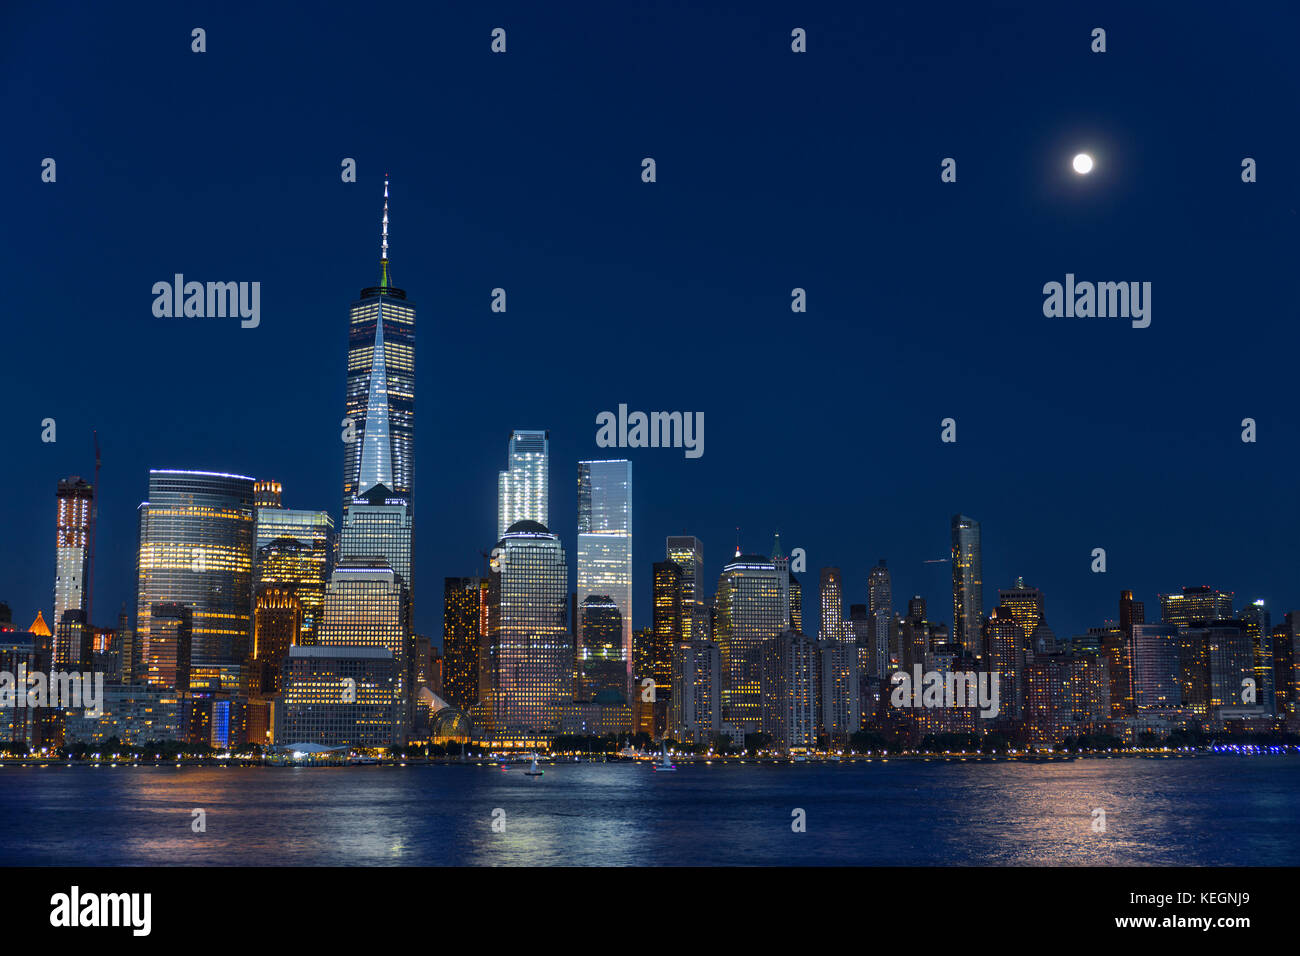 Lower Manhattan Skyline at blue hour, NYC, USA - Stock Image